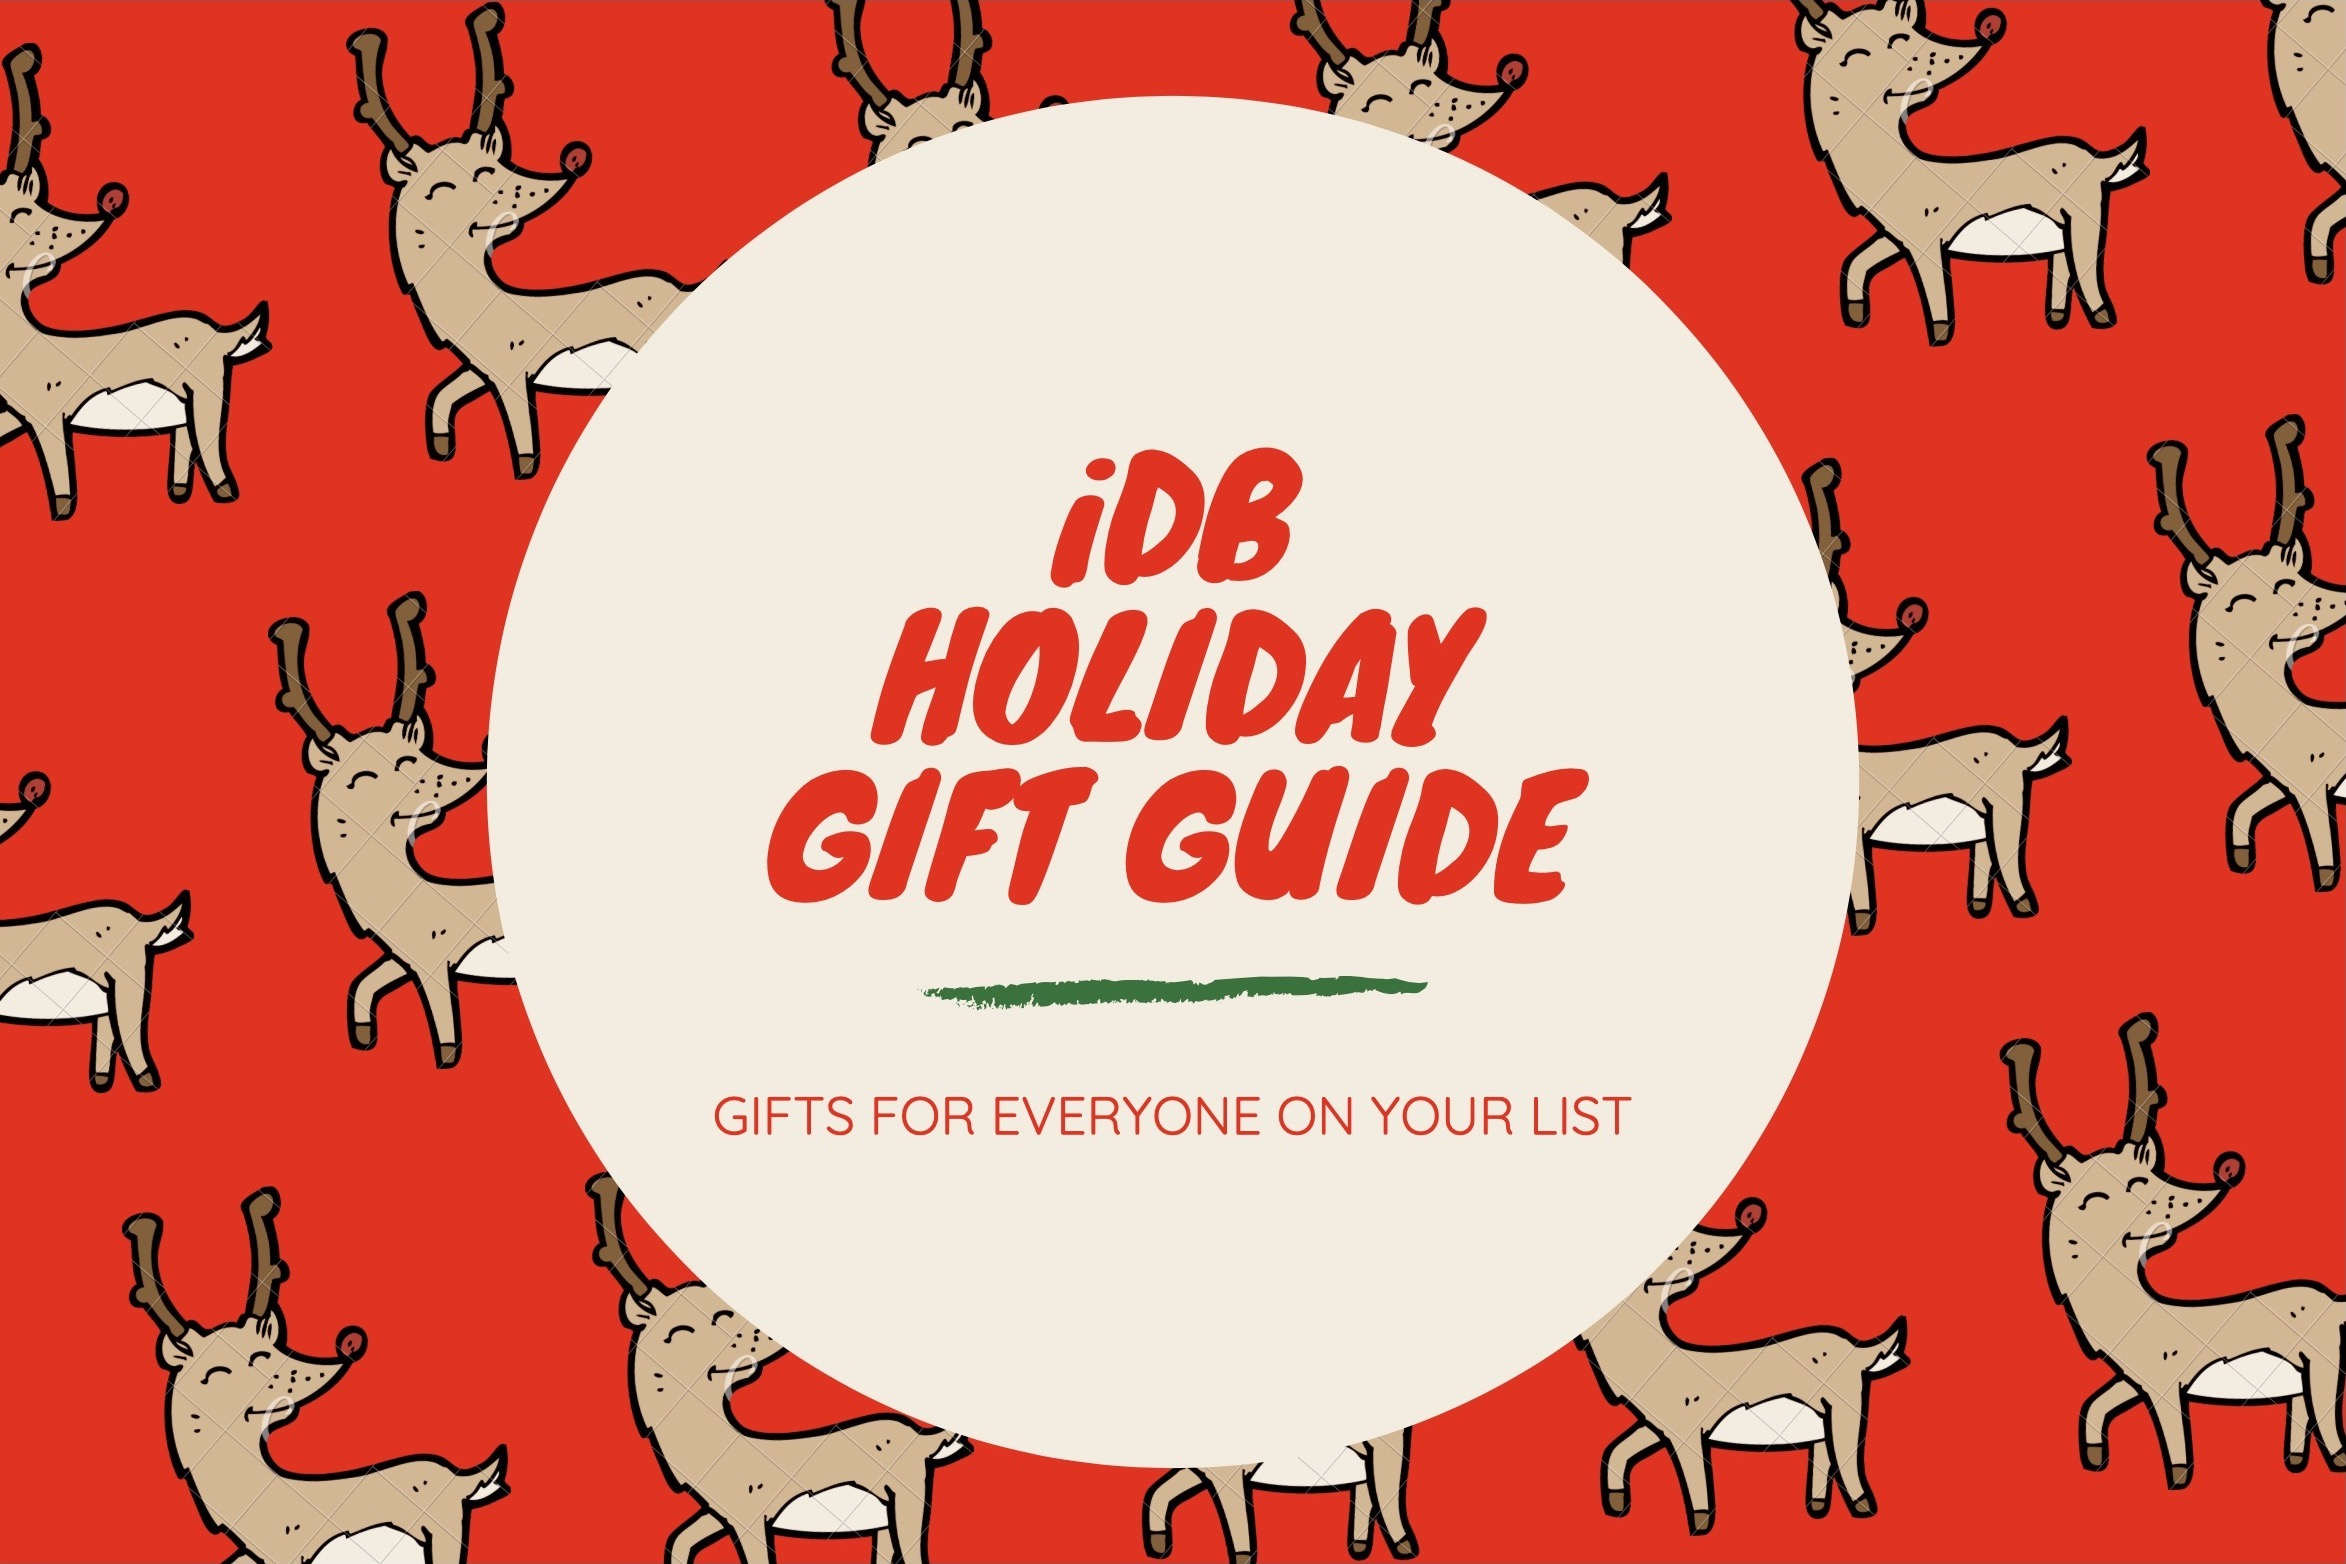 iDB Holiday Gift Guide